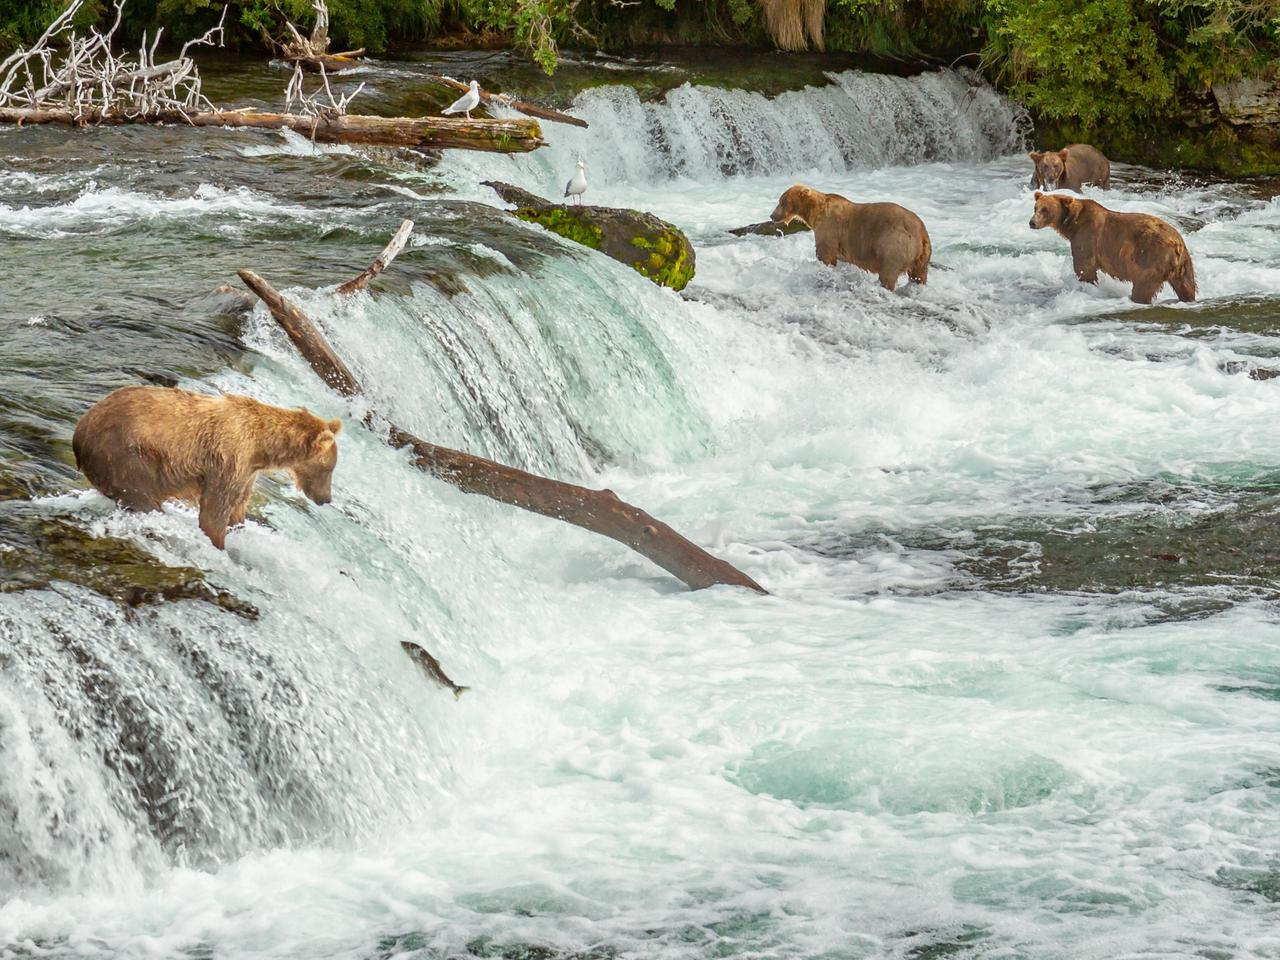 Four Alaskan grizzly bears fishing for salmon at Brooks Falls, Alaska, USA. A single salmon can be seen in midair with a bear waiting to catch it.